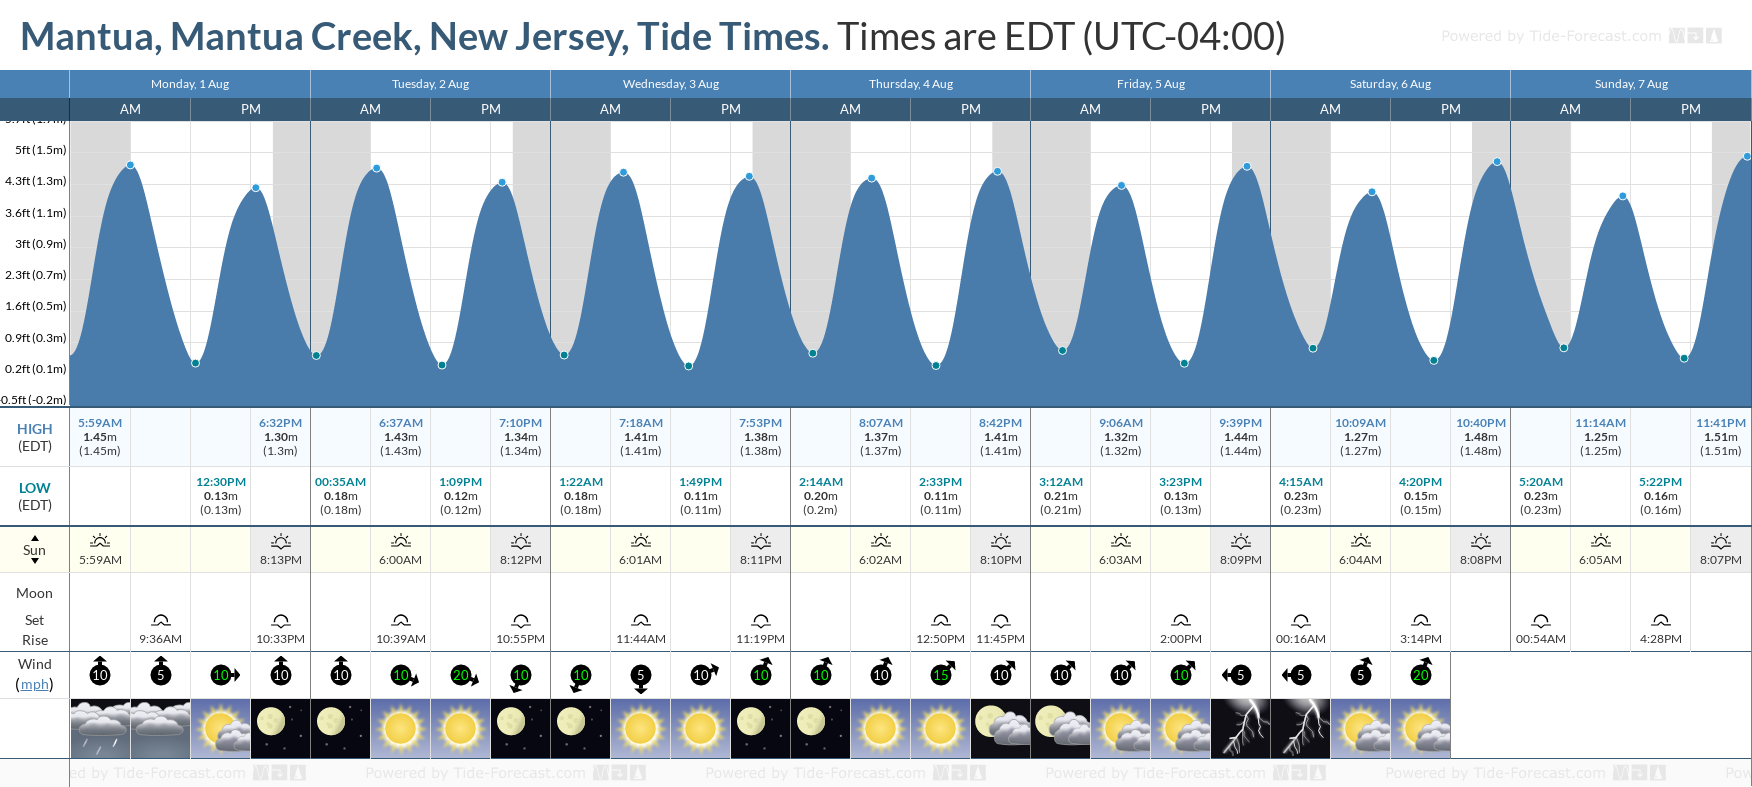 Mantua, Mantua Creek, New Jersey Tide Chart including high and low tide tide times for the next 7 days